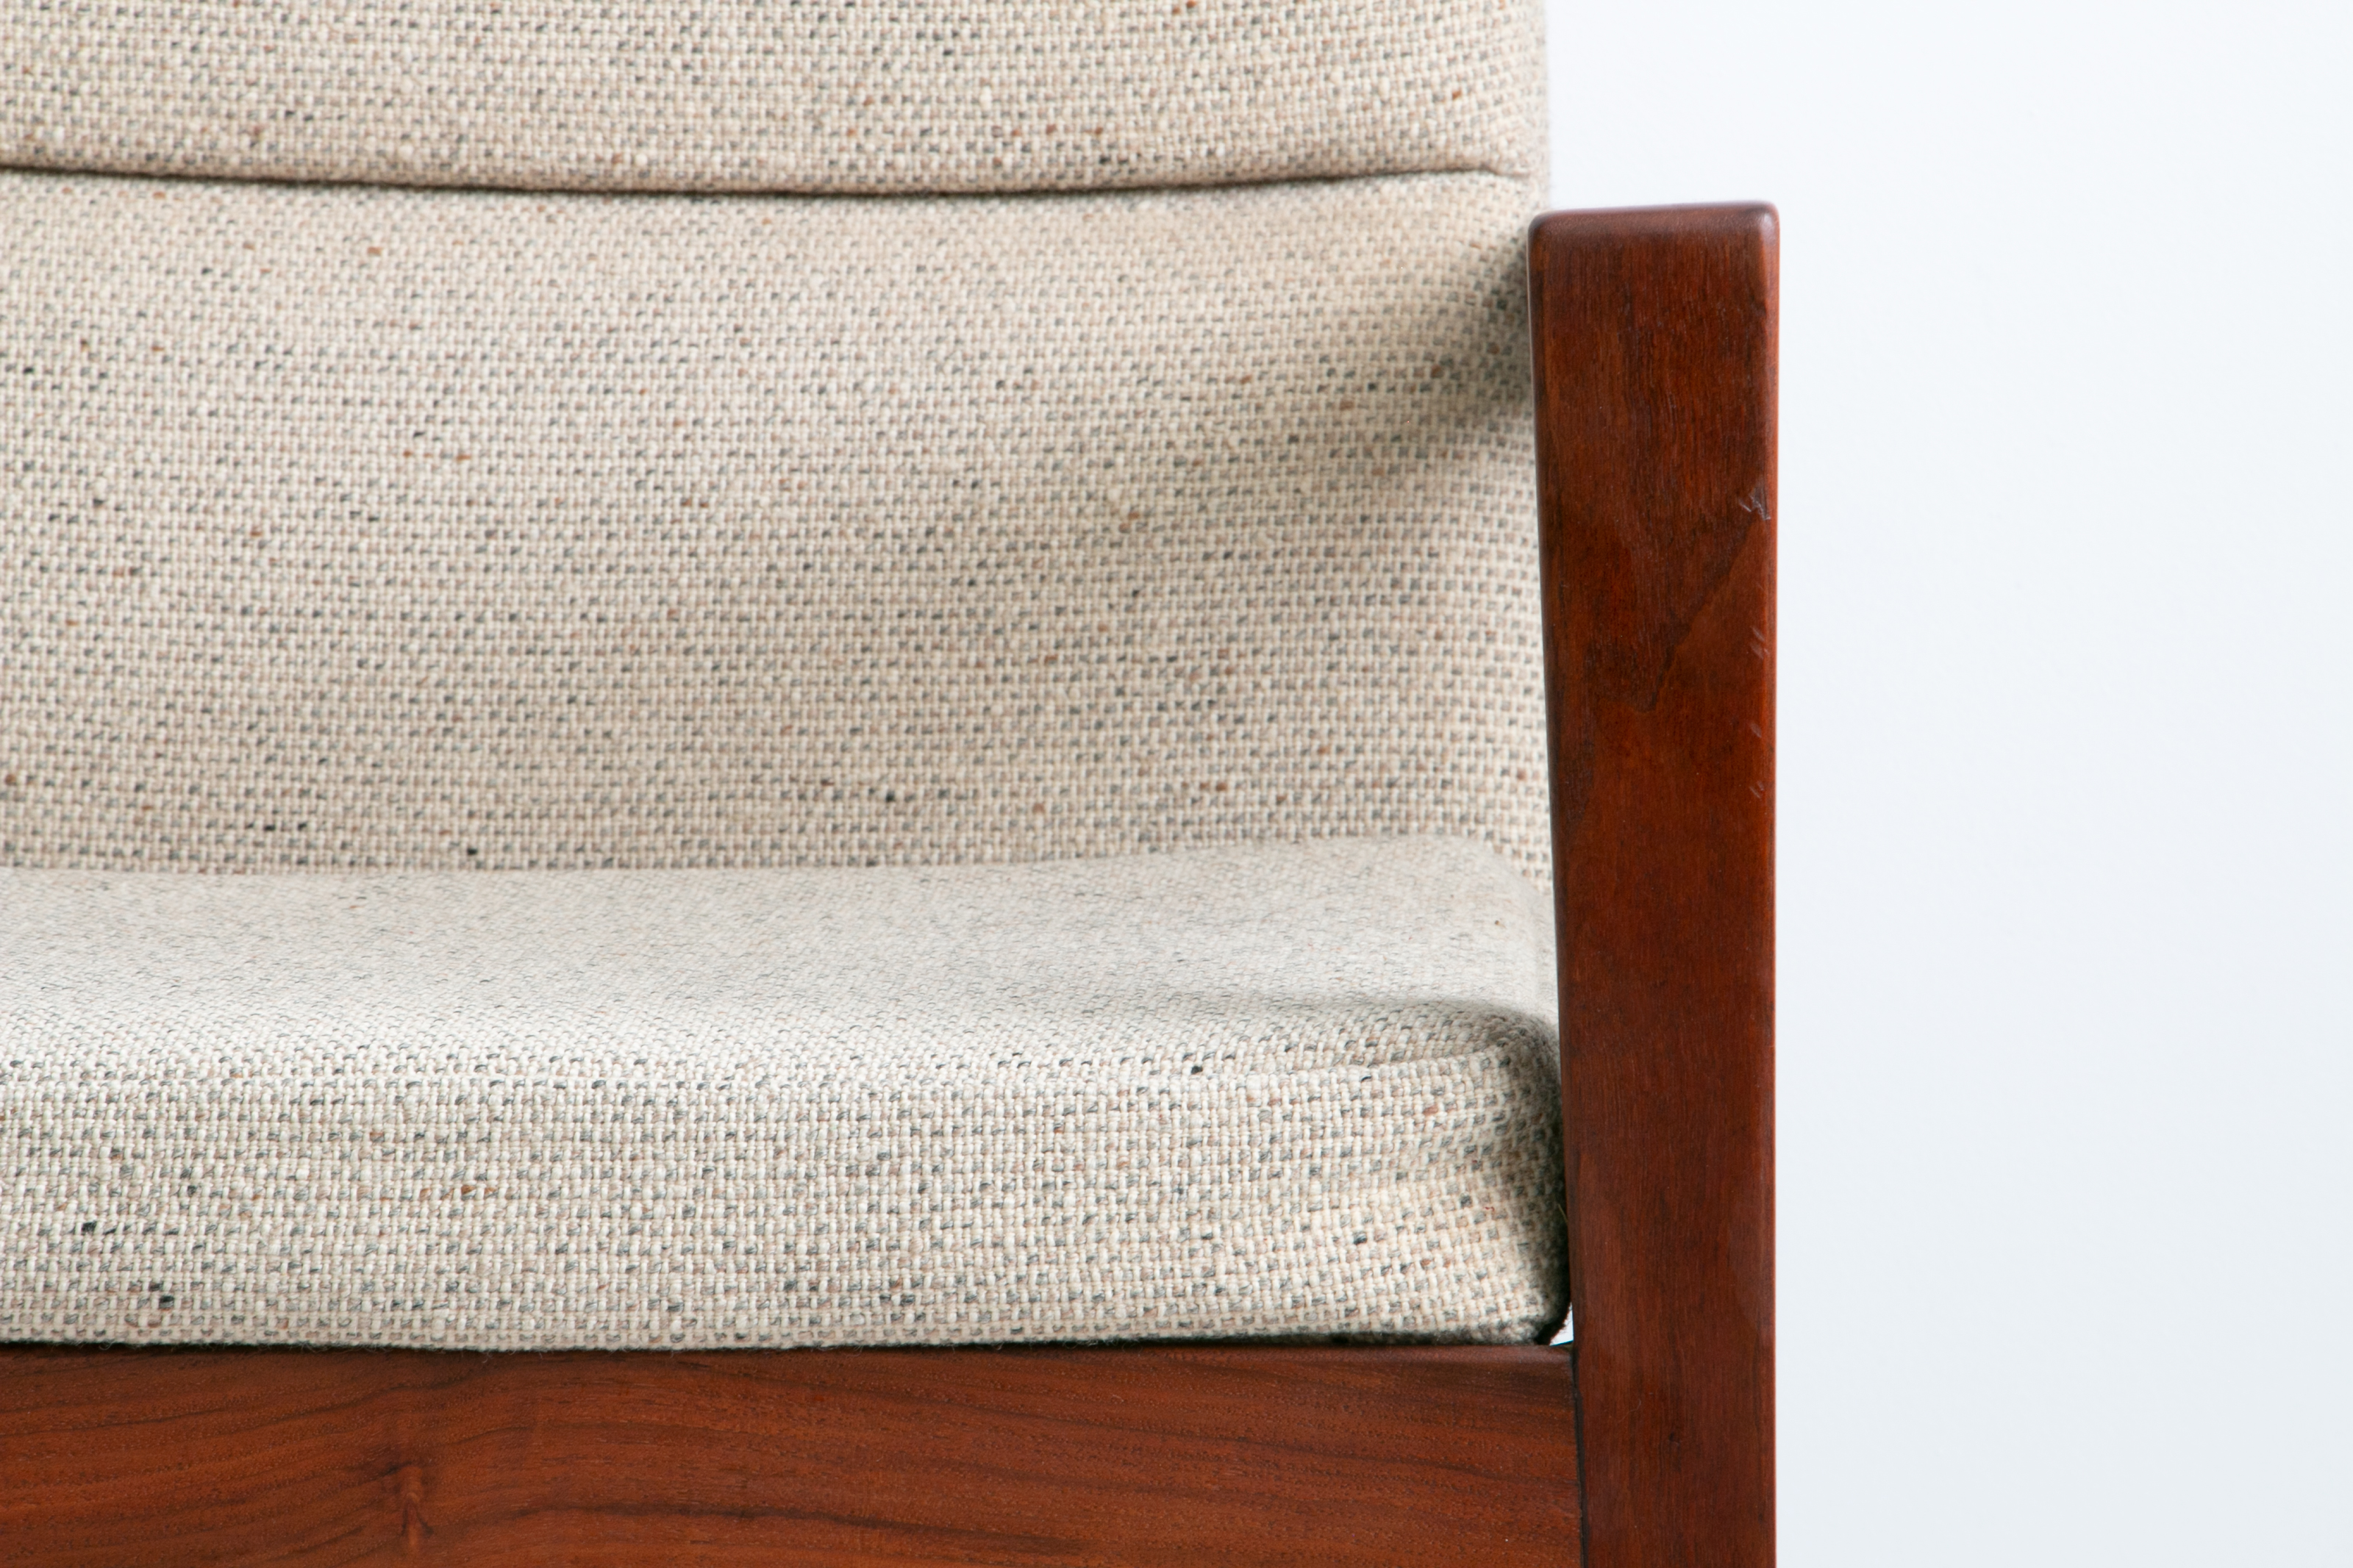 Pair of 1960's American Modern arm chairs by Jens Risom Designs in solid walnut with natural tweed upholstery.